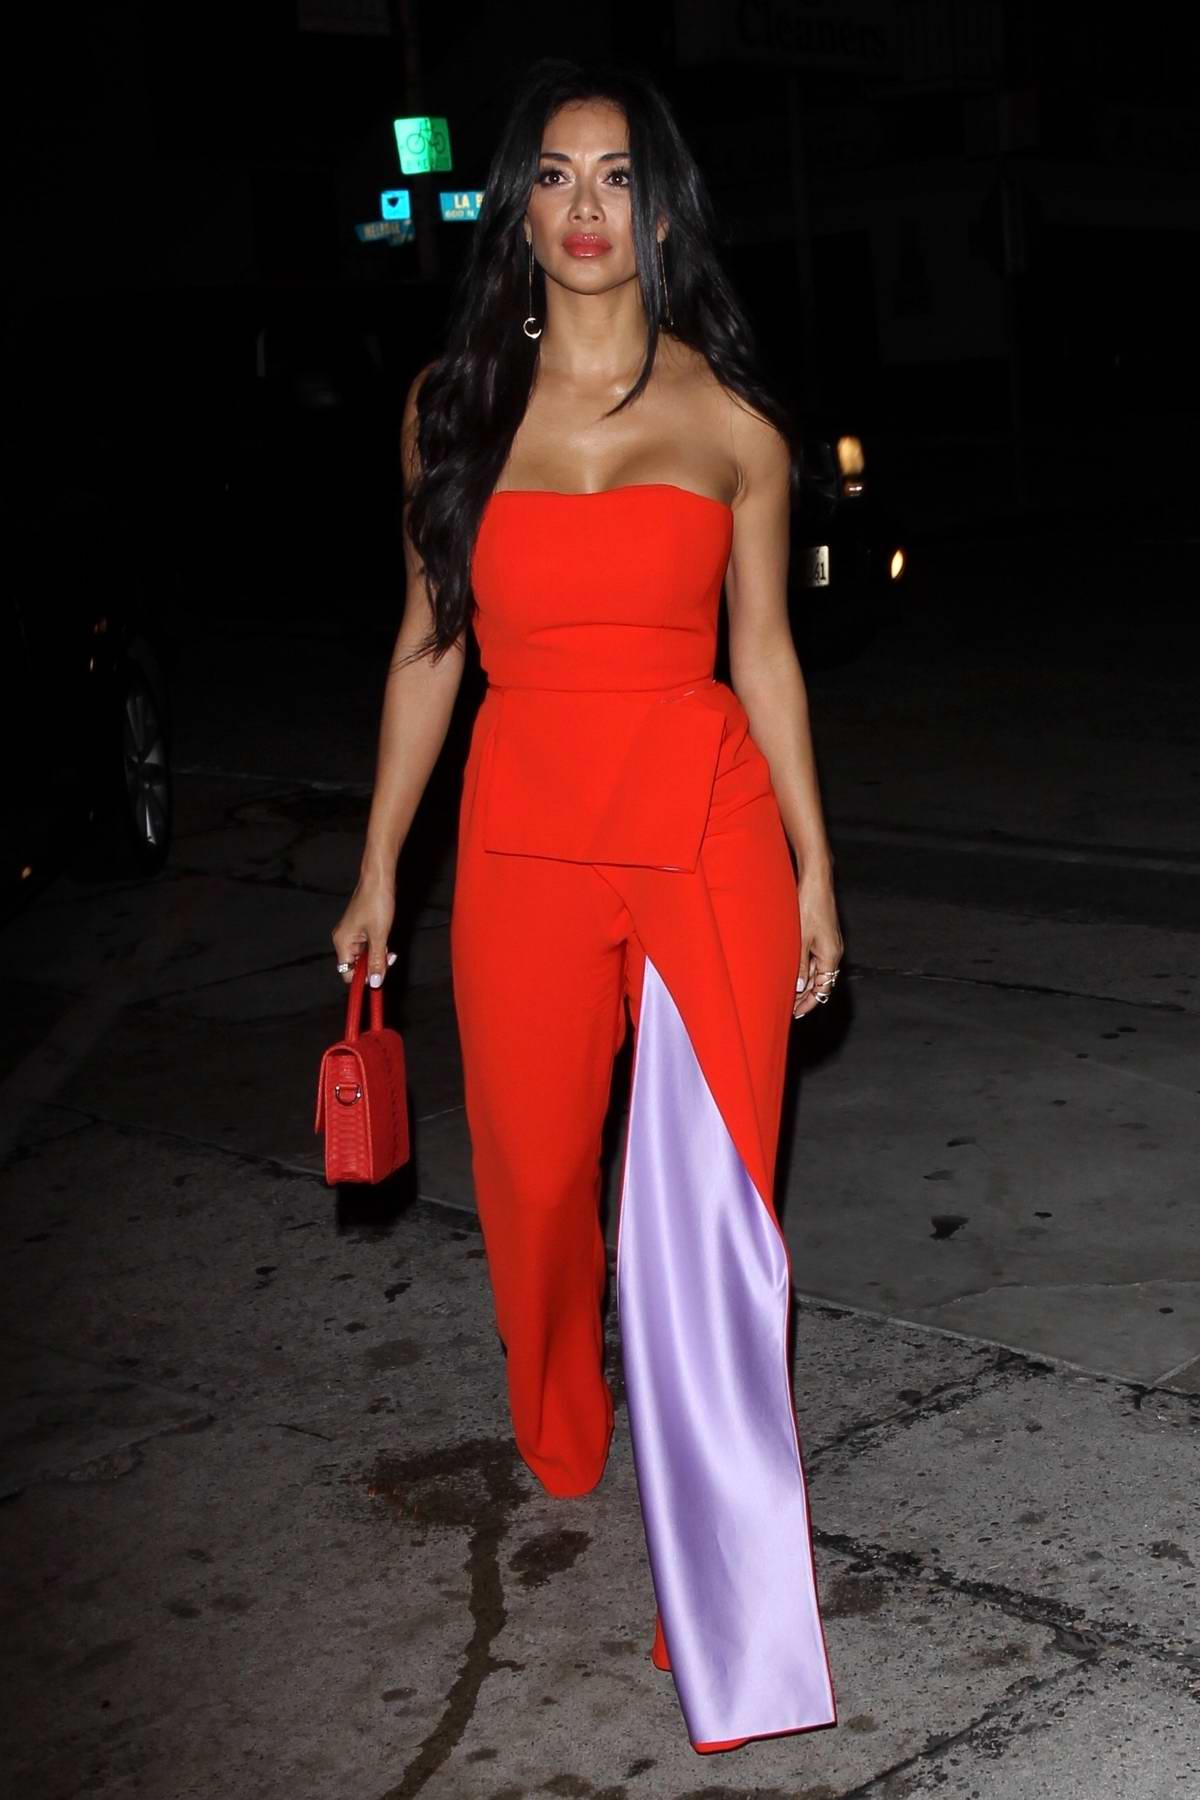 Nicole Scherzinger stuns in an all red ensemble during a night out at Craig's in West Hollywood, Los Angeles